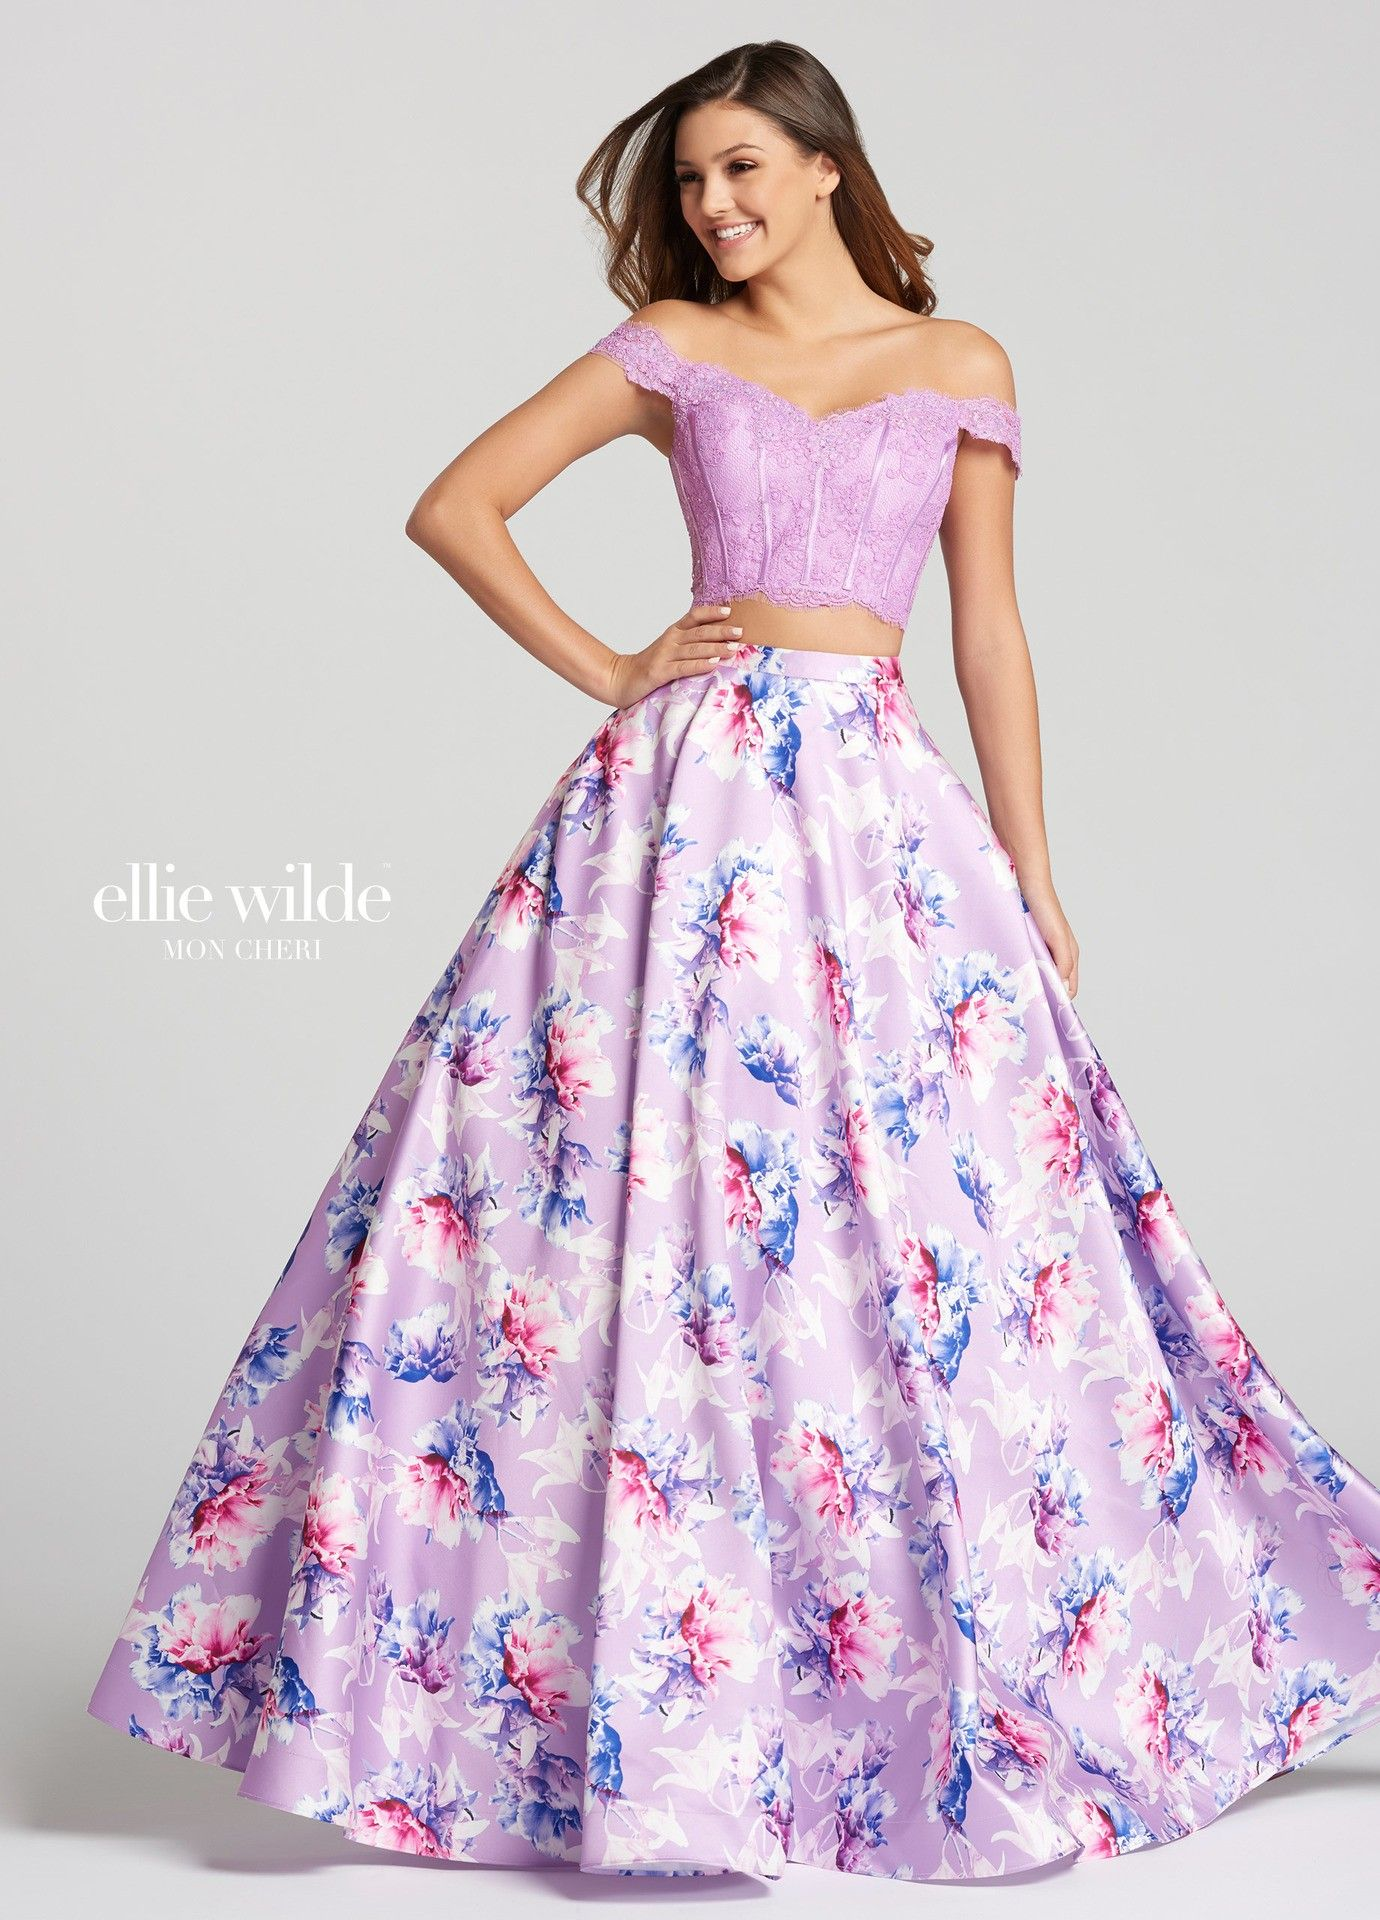 Discover The Perfect Fusion Of Mikado And Lace In Ellie Wilde Ew118178 This Lovely Two Piece Ellie Wilde Prom Dresses Prom Dresses Two Piece Purple Prom Dress [ 1920 x 1380 Pixel ]